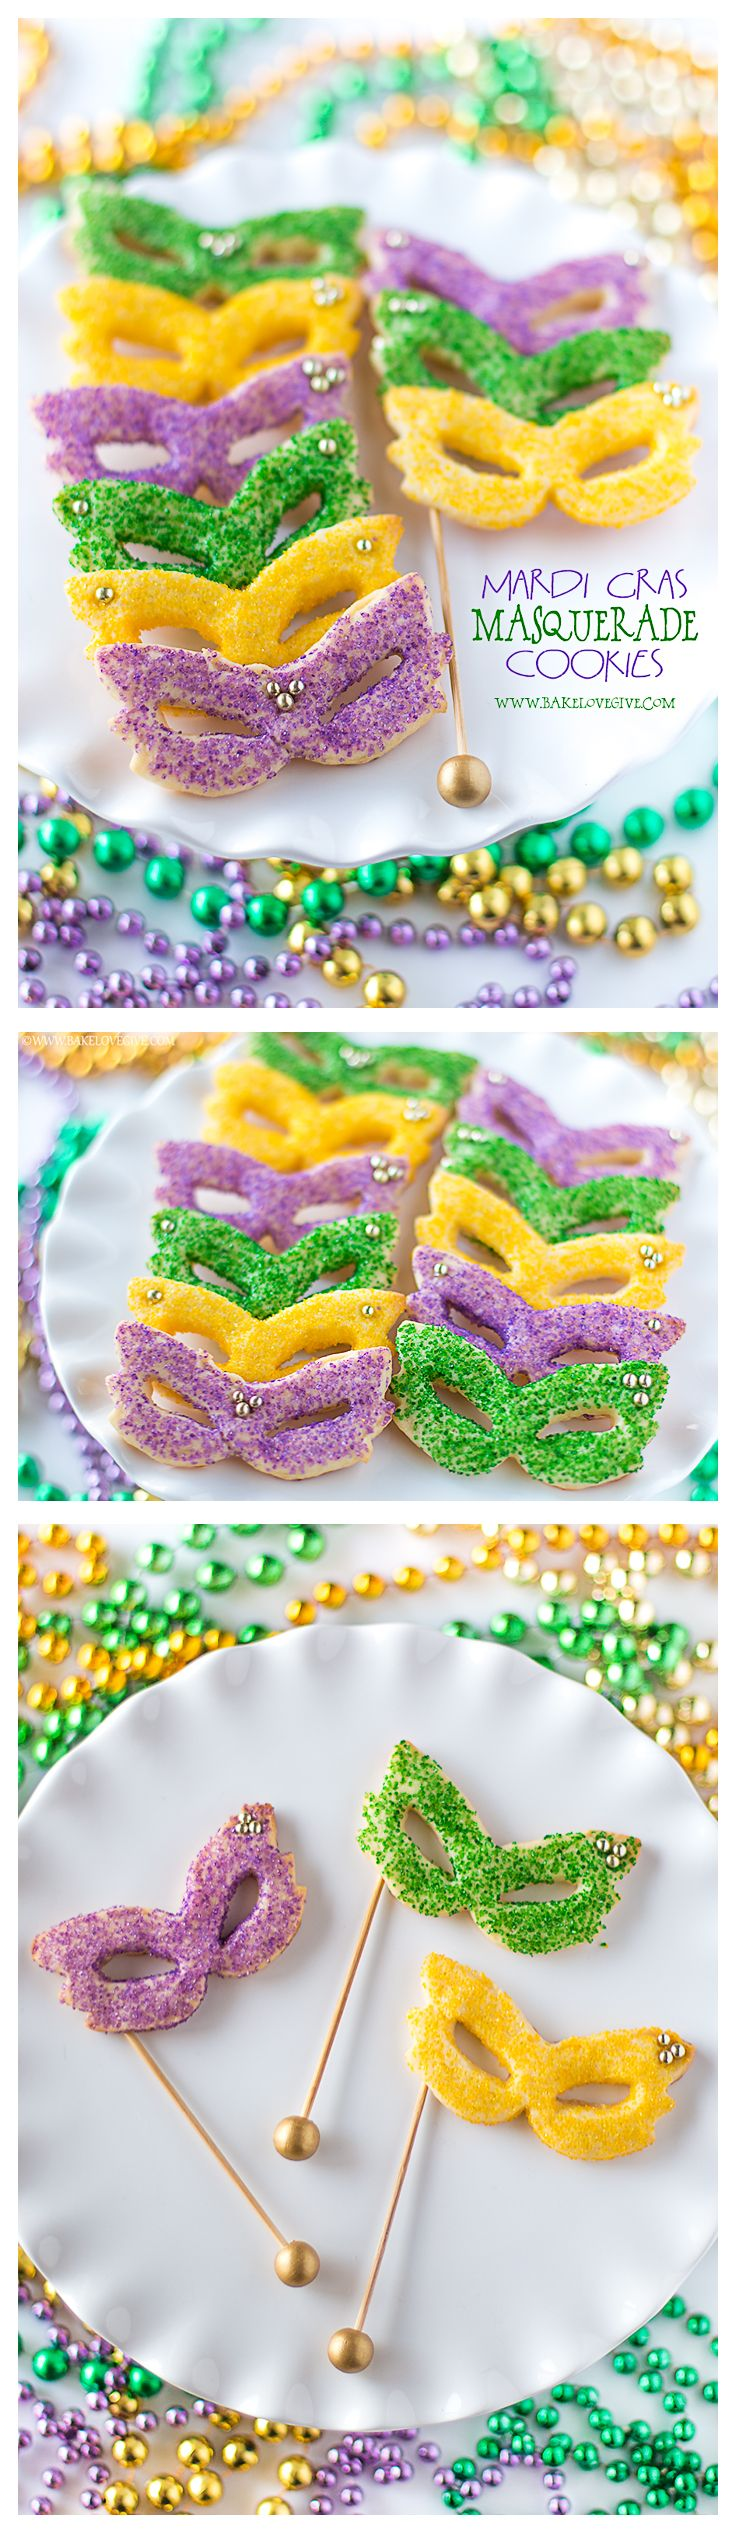 Celebrate Carnival with Mardi Gras Masquerade Sugar Cookies